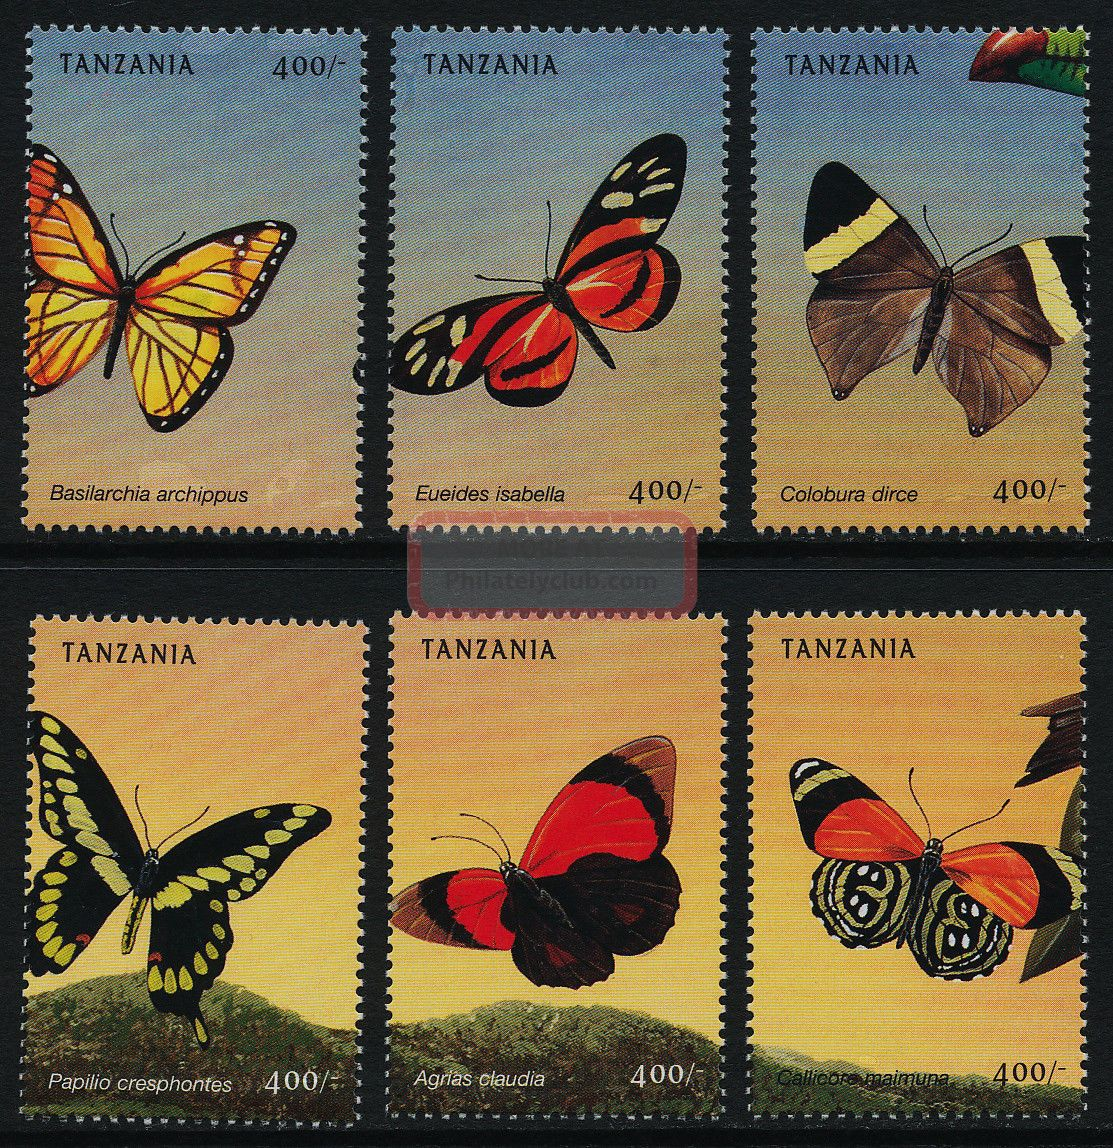 Tanzania 1966a - F Insects,  Butterflies Africa photo